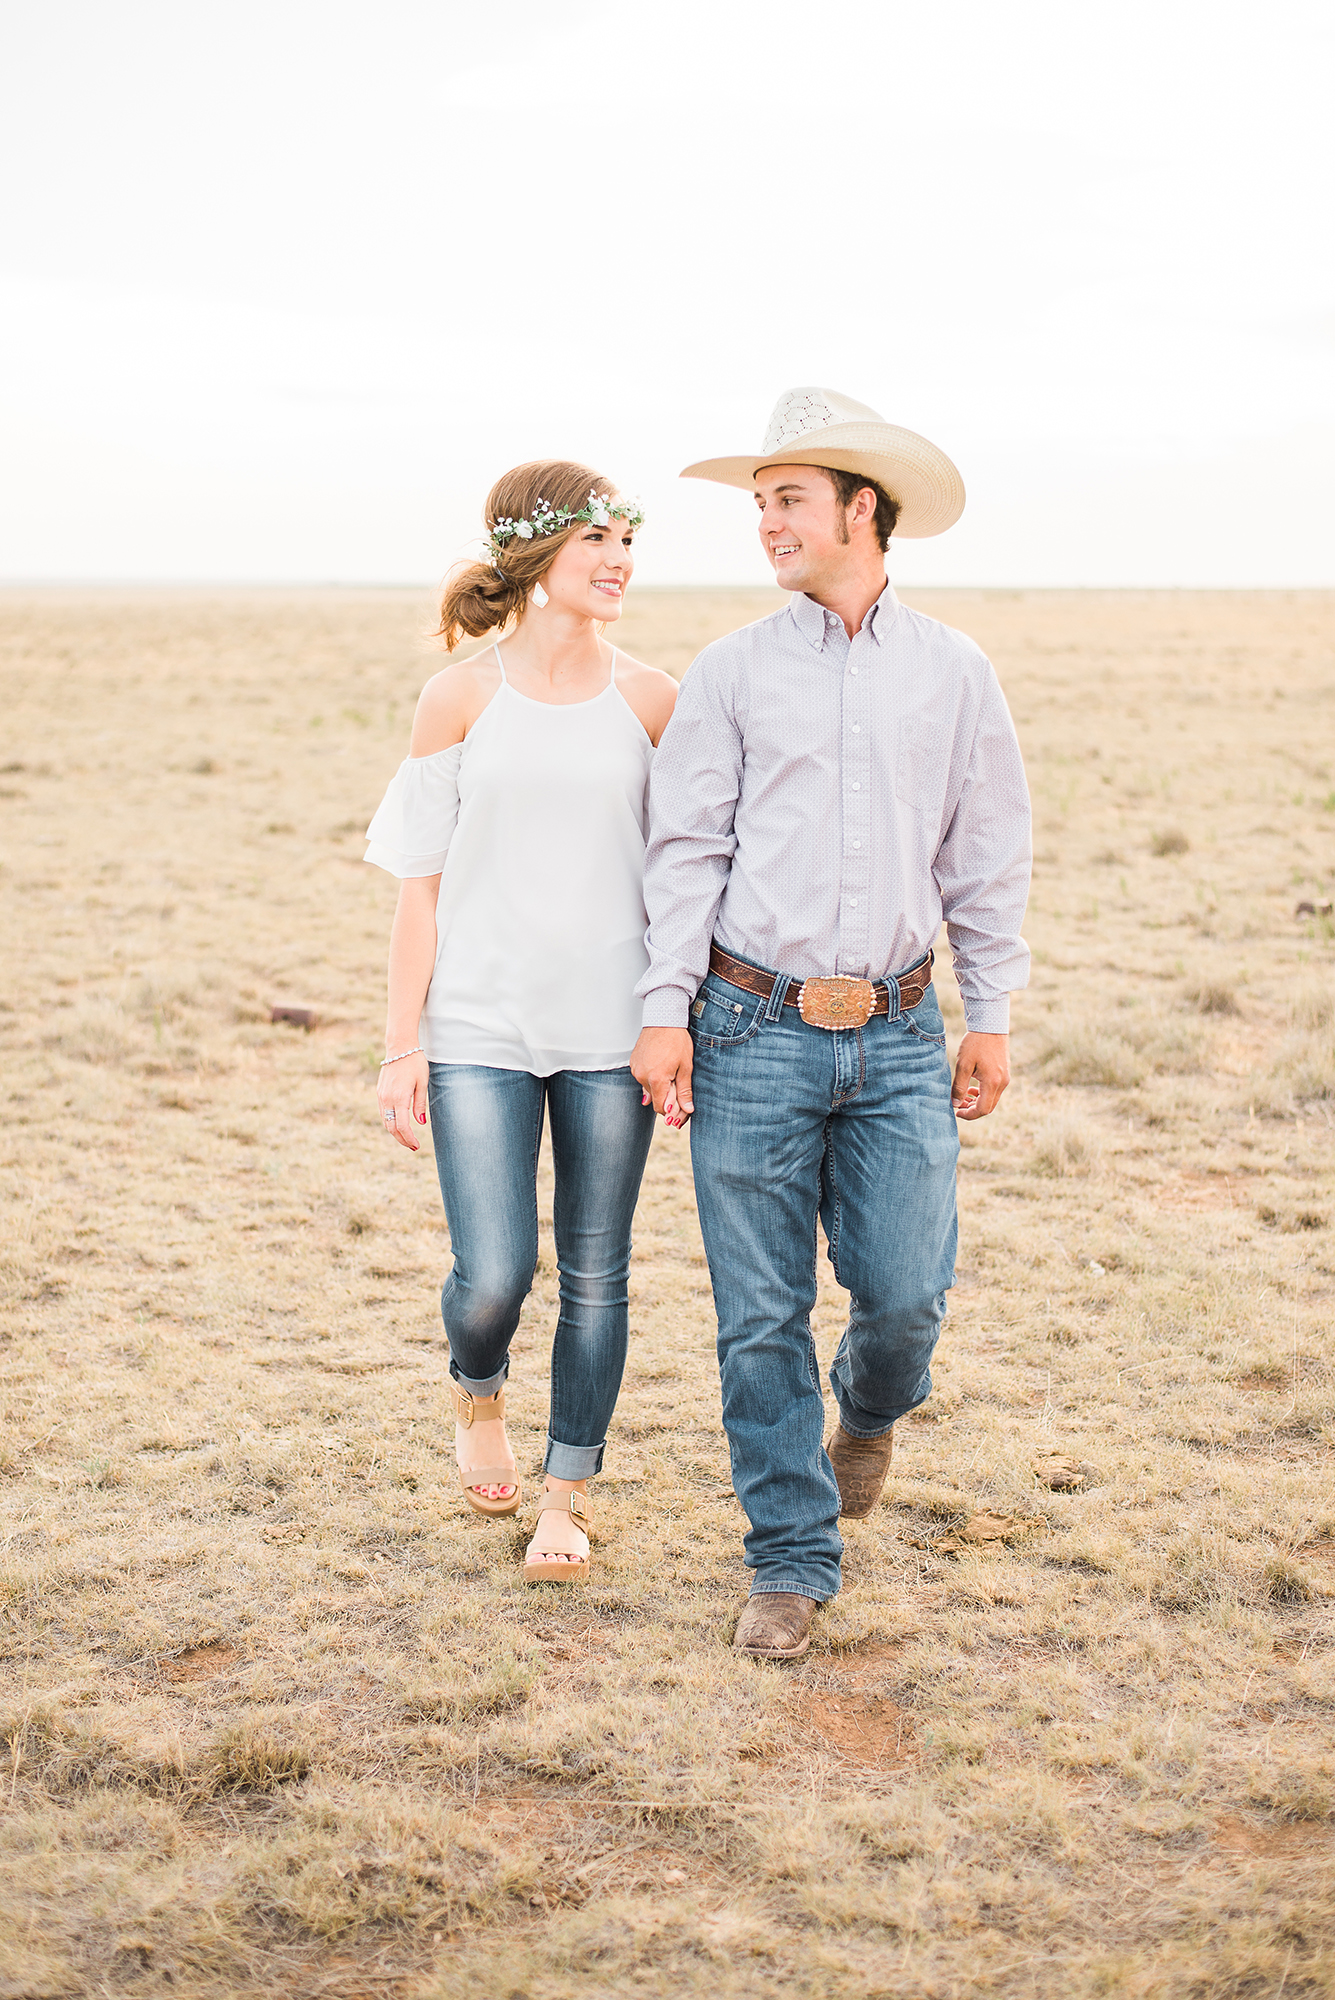 new-mexico-engagement-photographer-skylar-rain-photography-k-l-2.jpg